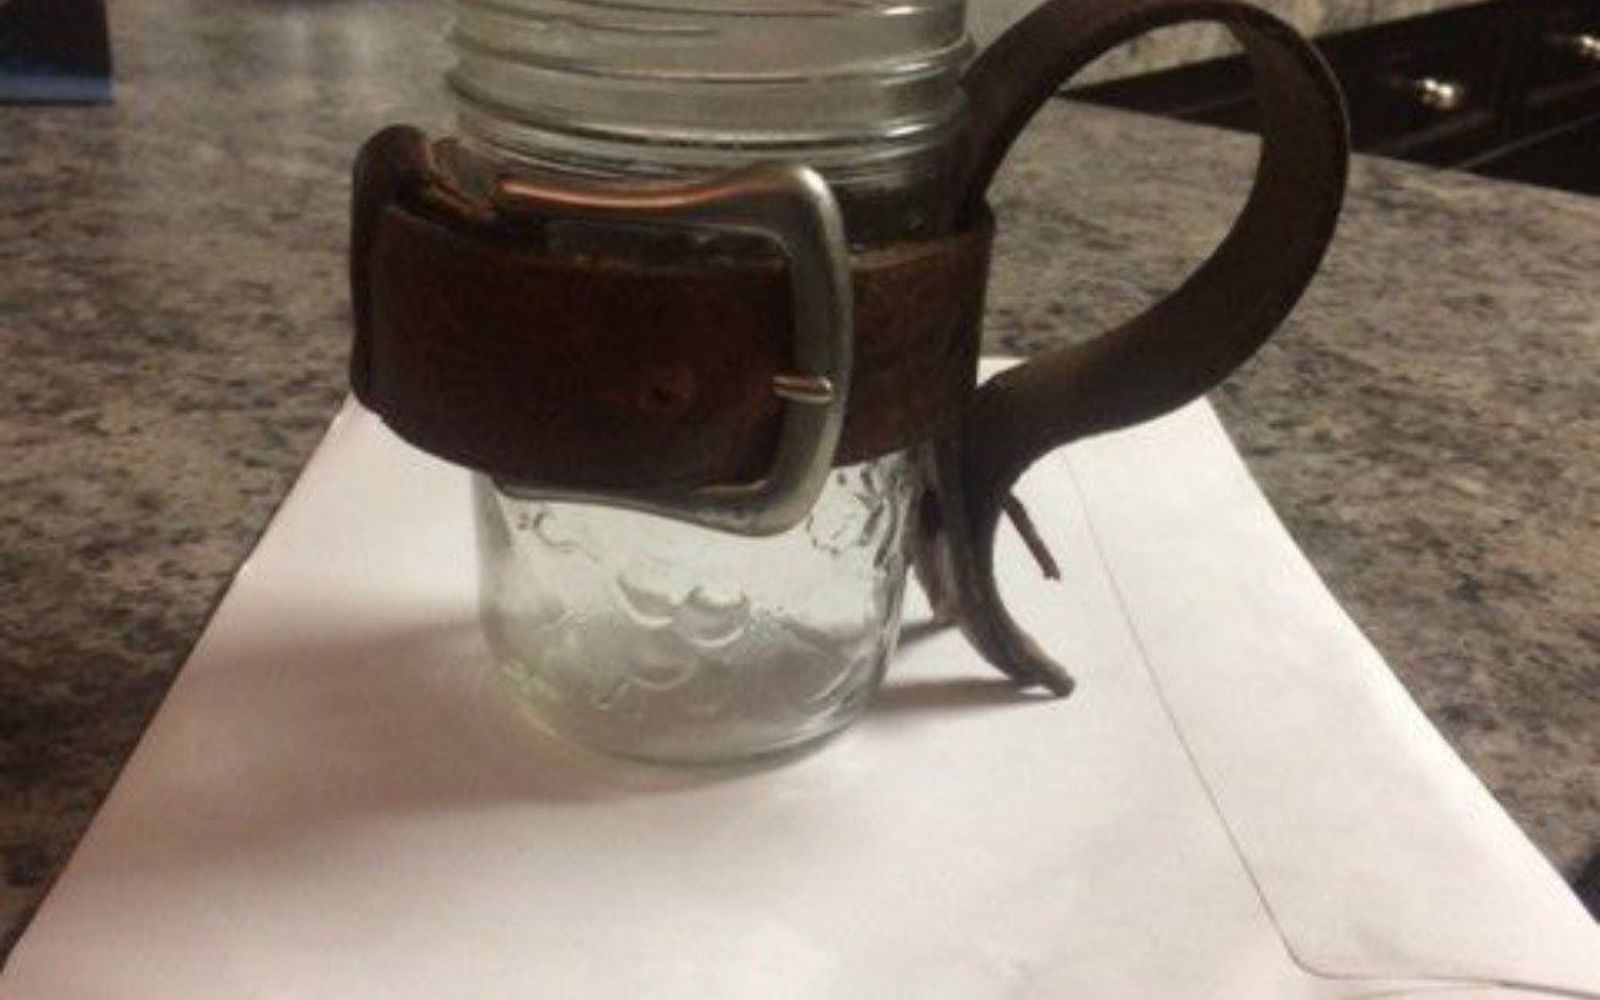 s 14 exciting mason jar ideas you just have to try, mason jars, 8 The leather mason jar tool caddy